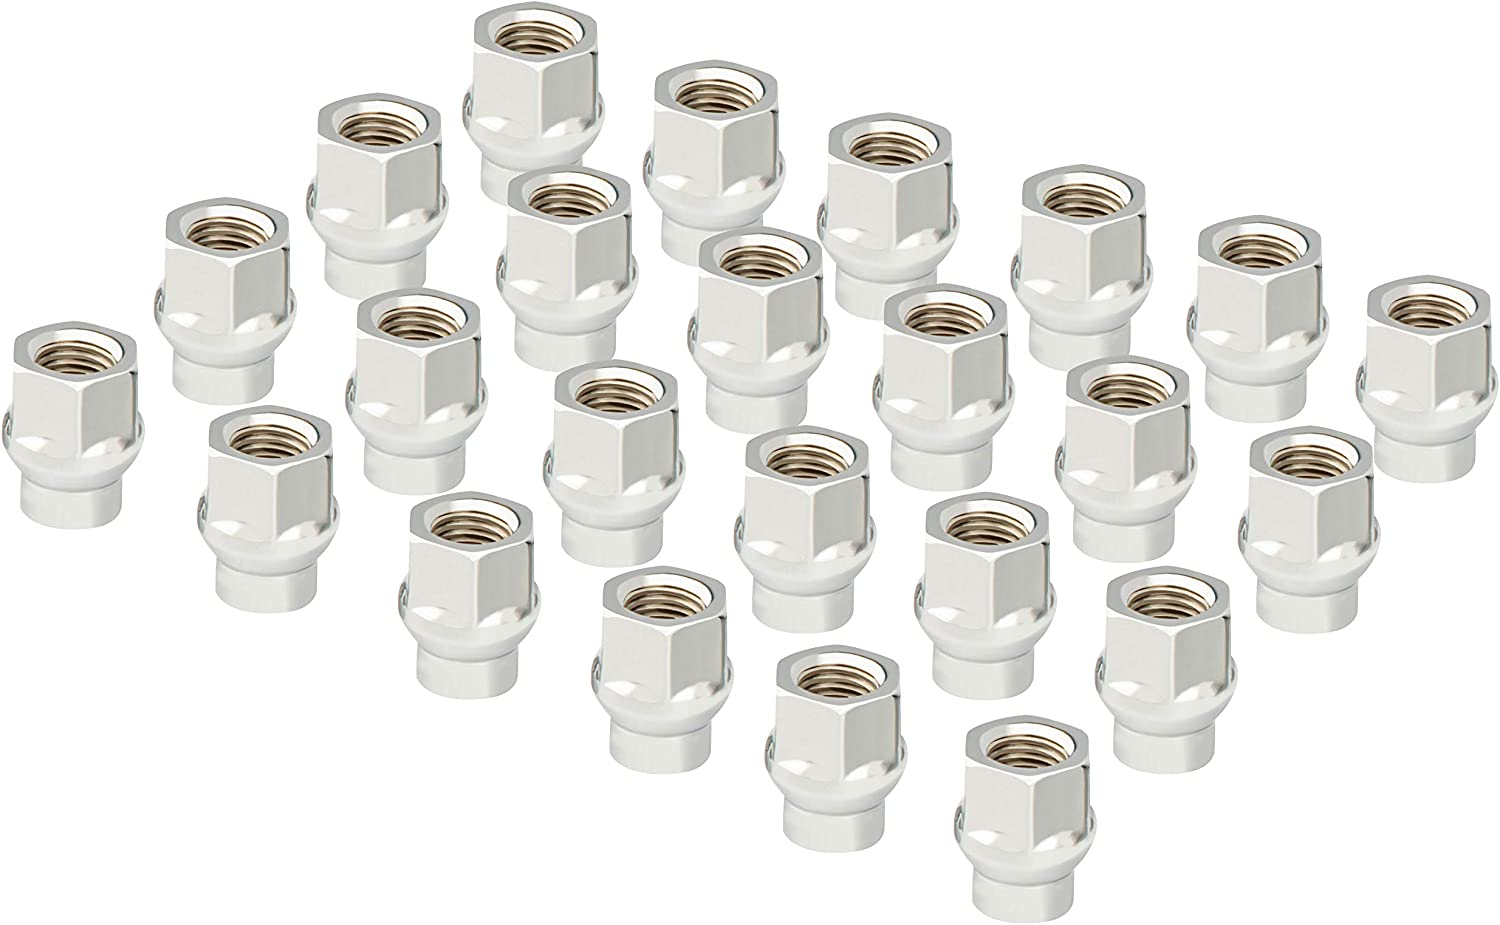 Open End Style Conical Lug Nut Aluminum Aftermarket Wheels with Hub Caps Pack of 24 Proper Mount hub for Toyota When Install Wheel Spacers 12x1.5 ET Lug Nuts